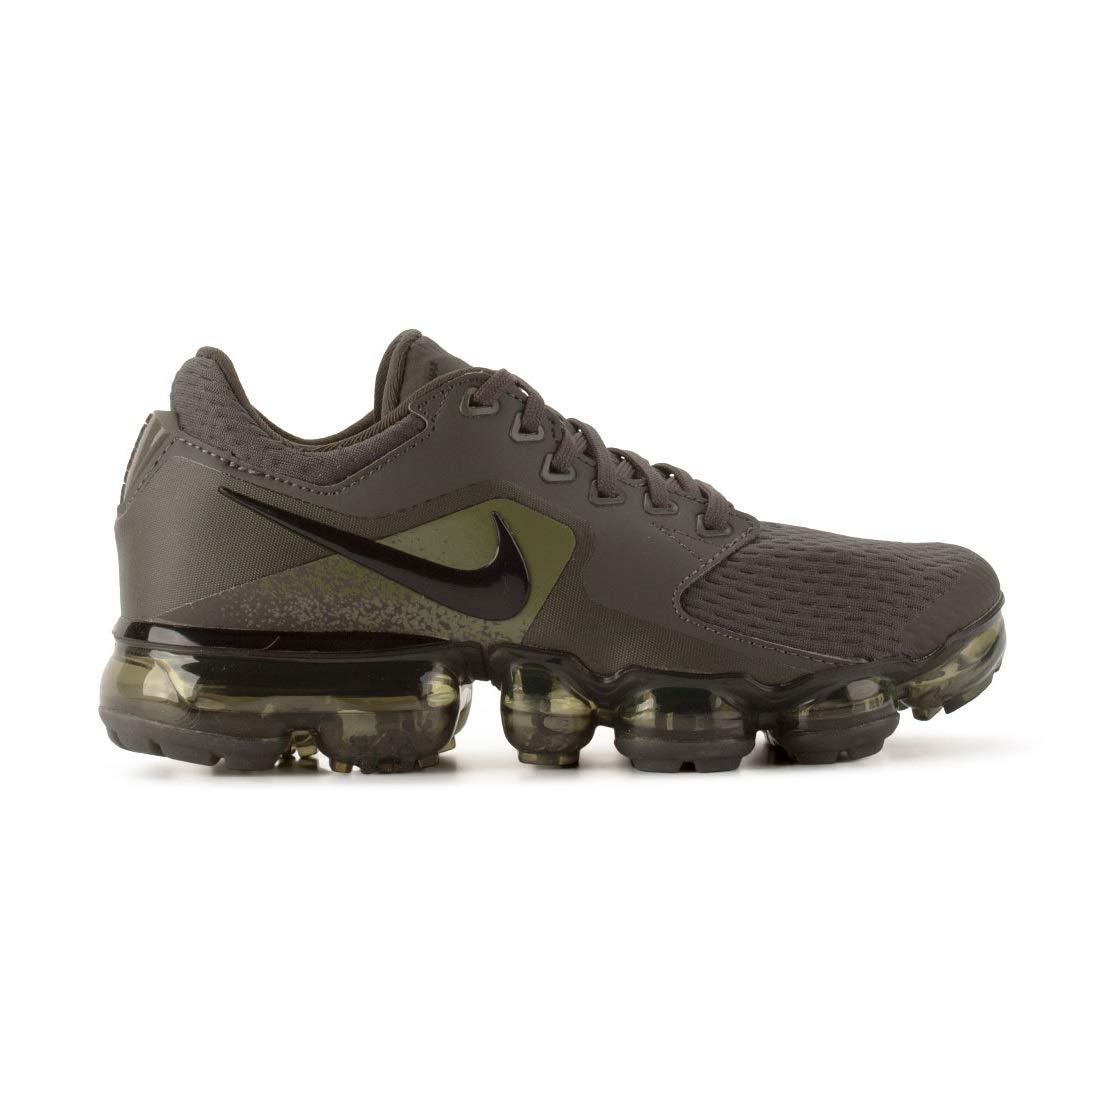 e6c17abb43f Nike Boys Air Vapormax (gs) Fitness Shoes